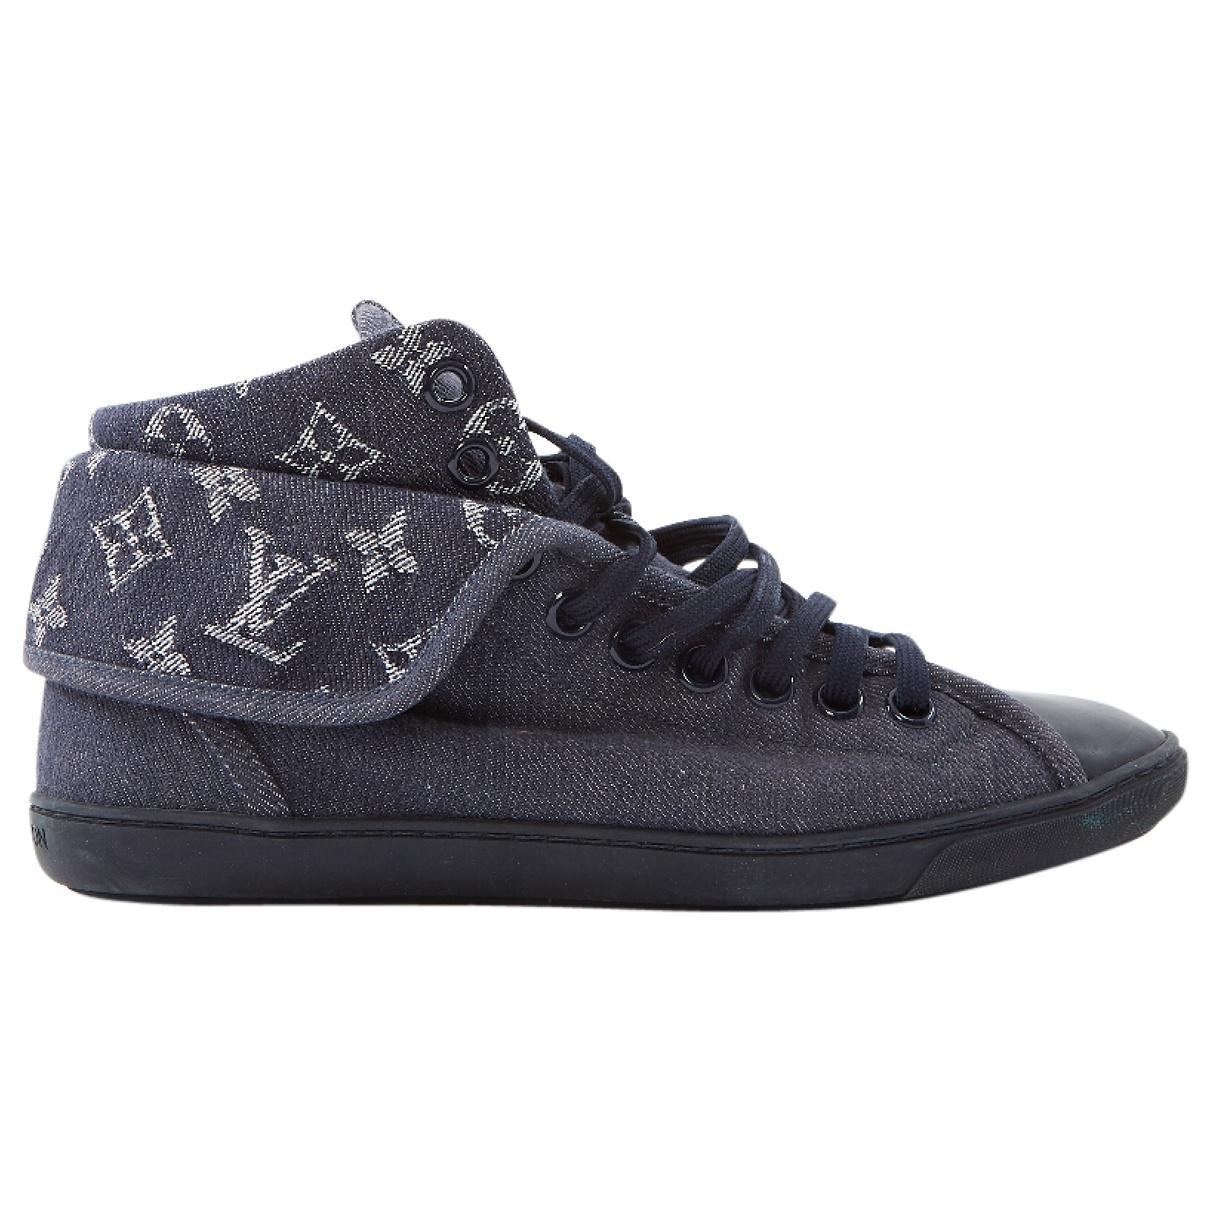 4a0348c6ac49 Lyst - Louis Vuitton Blue Cloth Trainers in Blue